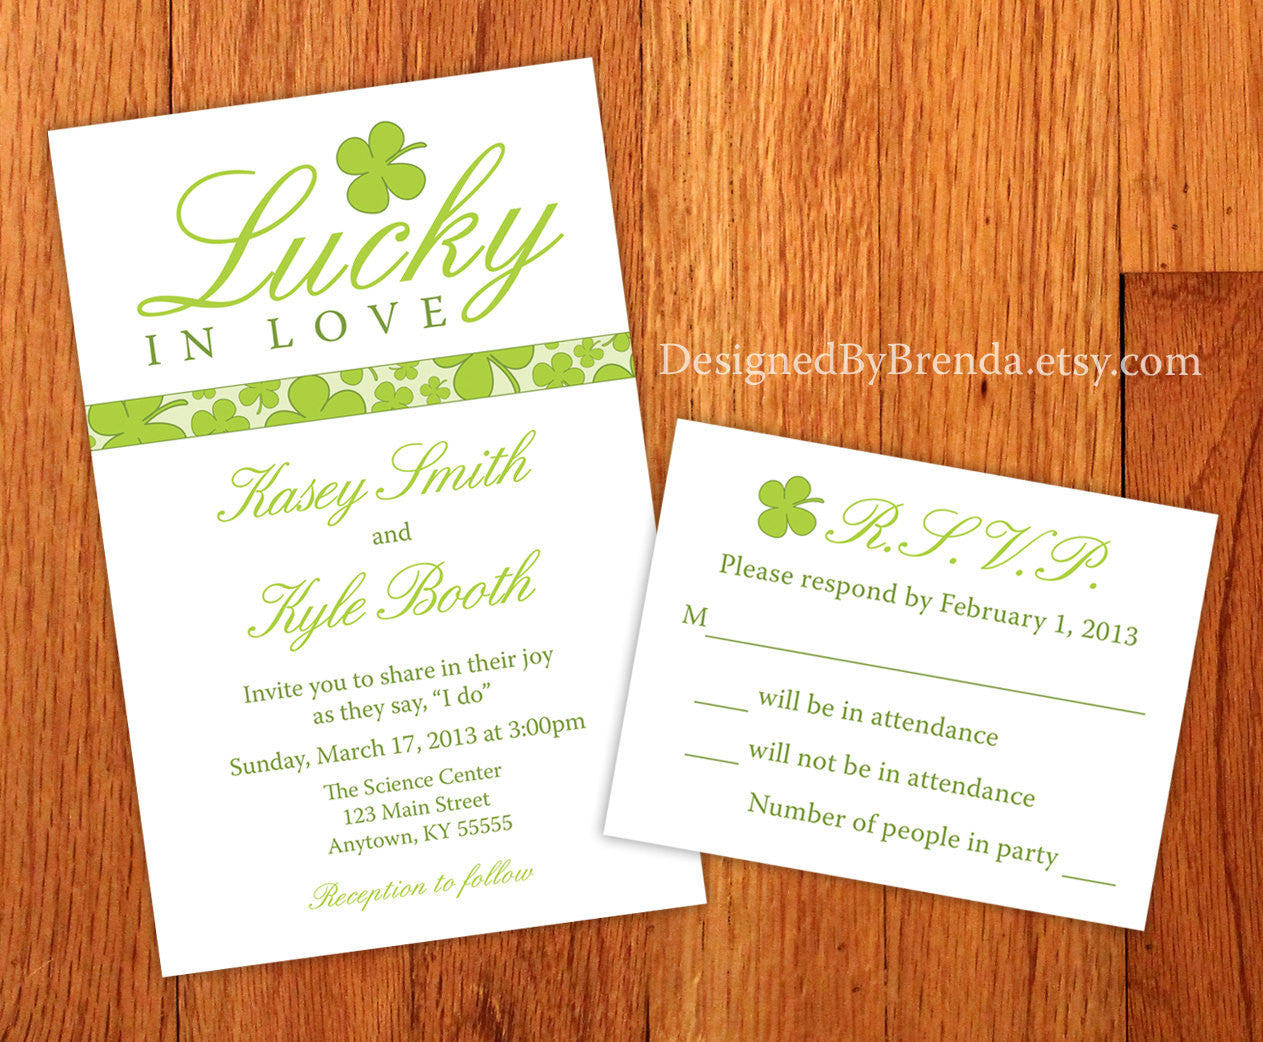 Lucky in Love Wedding Invitations with Green Four Leaf Clover Shamrocks - St. Patrick's Day Wedding